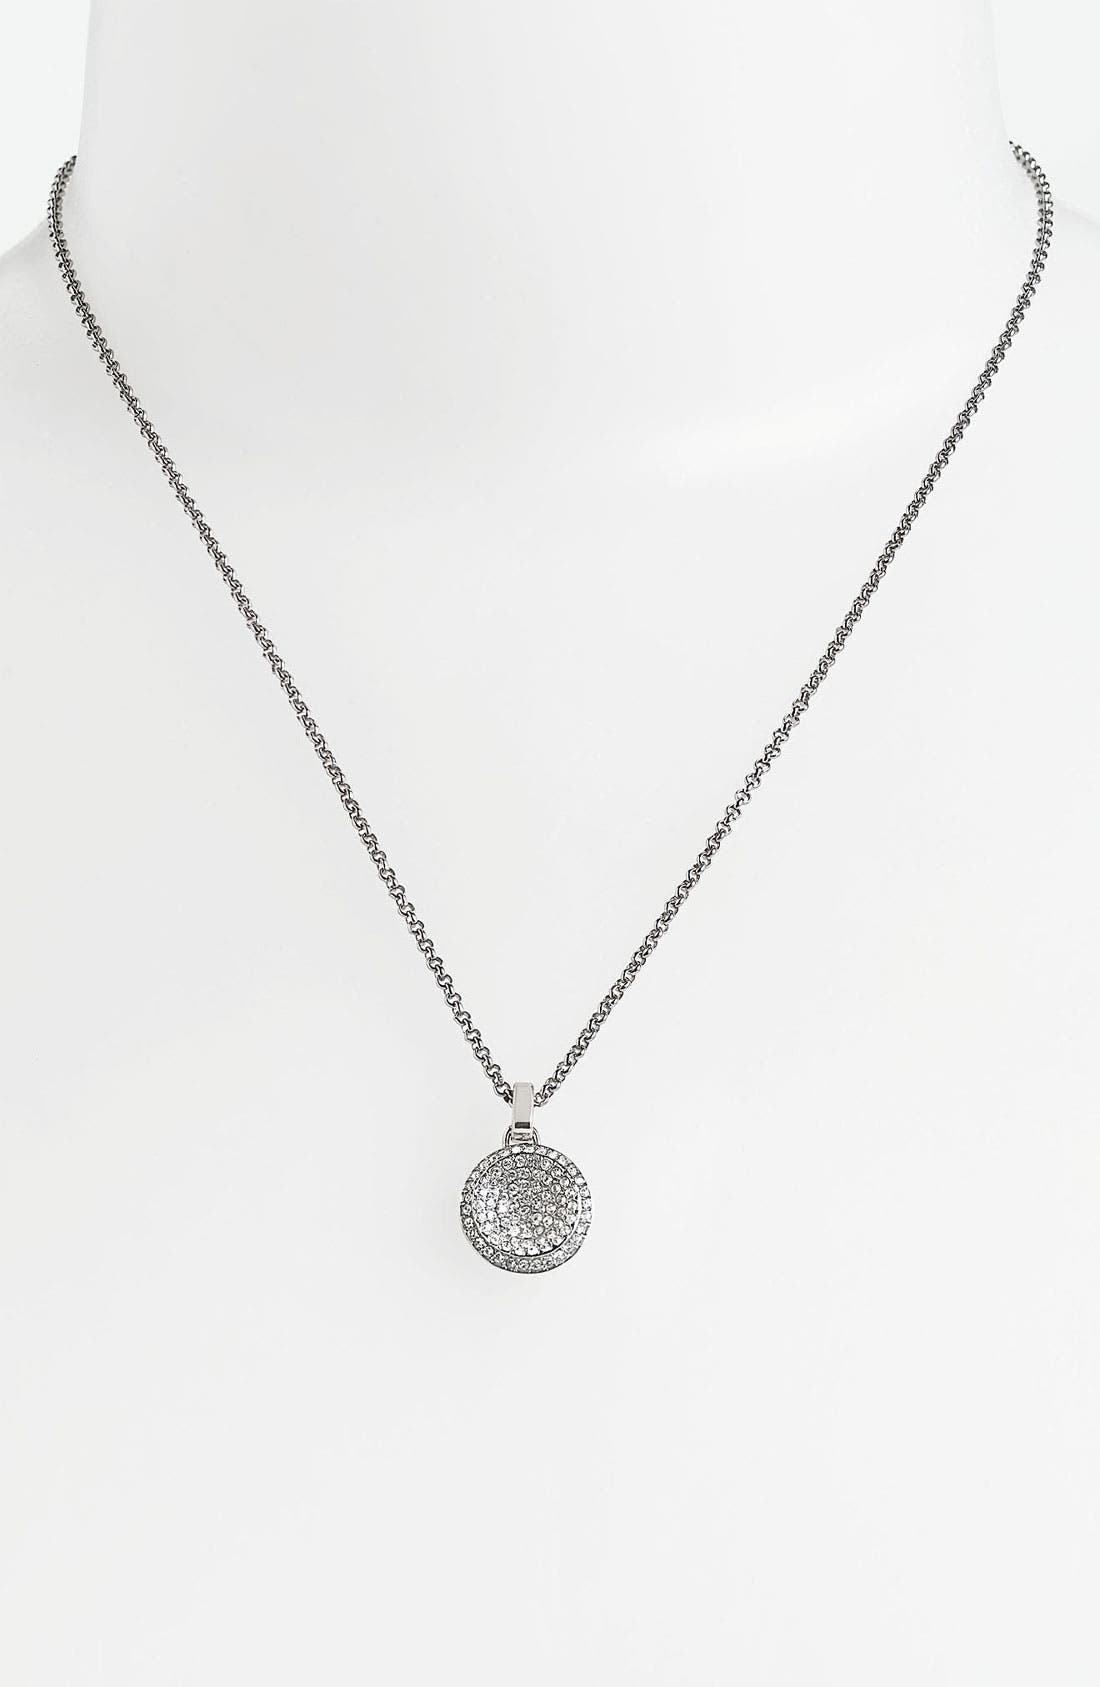 Main Image - Michael Kors Pendant Necklace